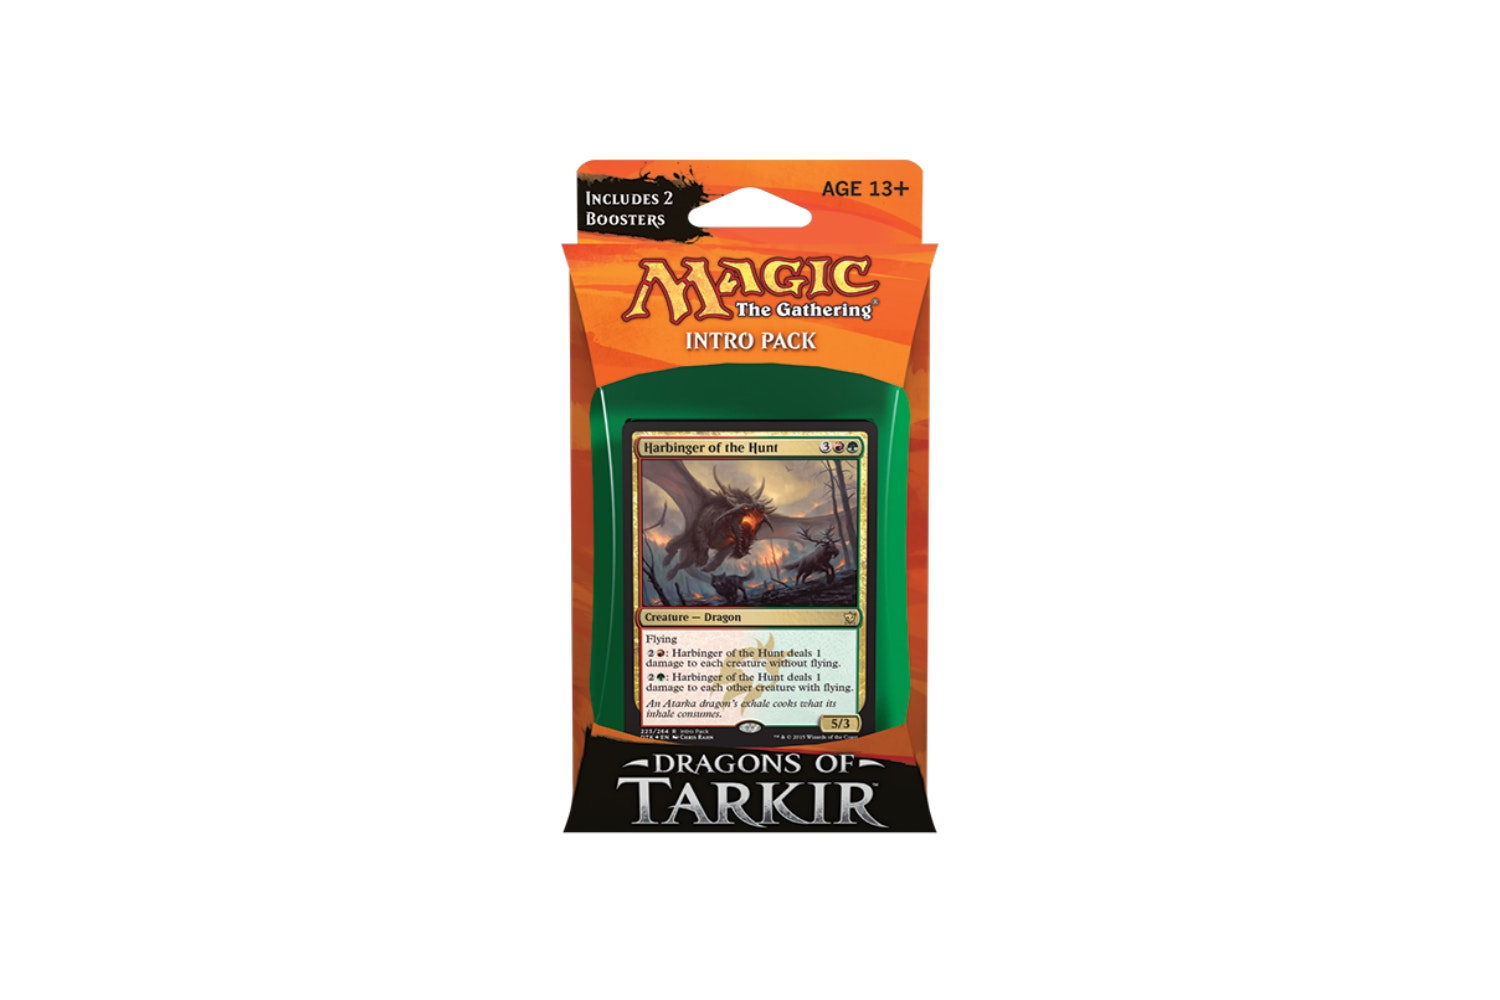 Dragons of Tarkir Intro Deck (5-Pack)